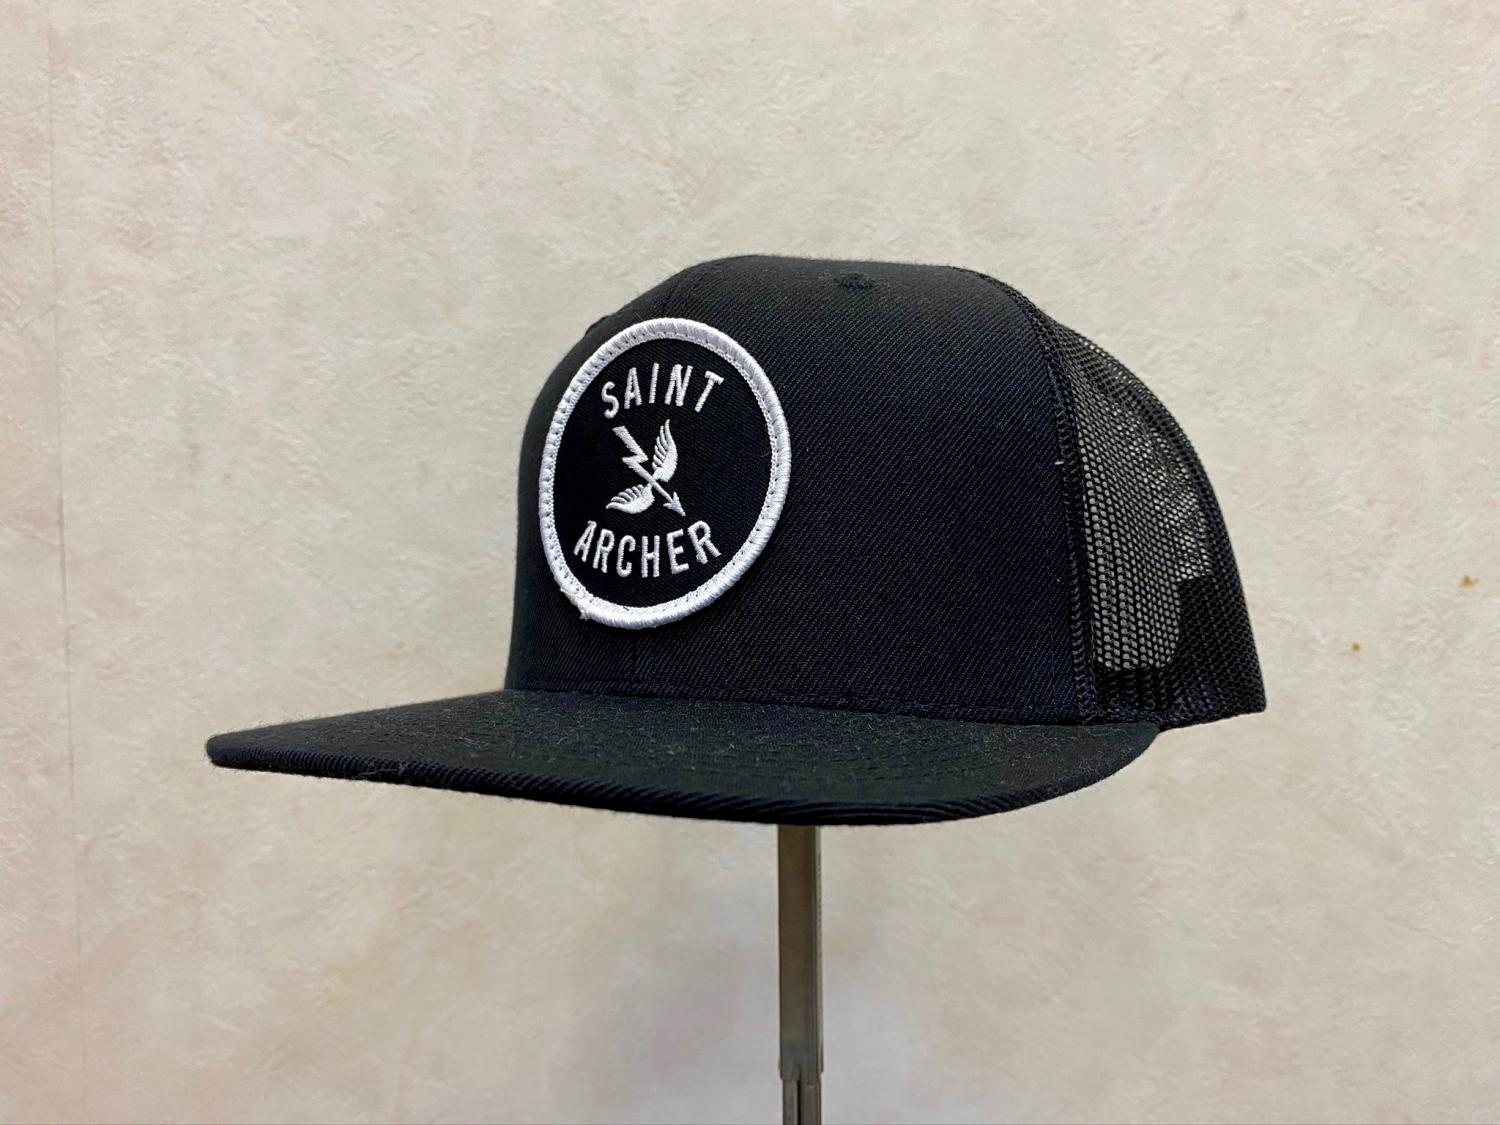 【Saint Archer Brewing】original mesh cap